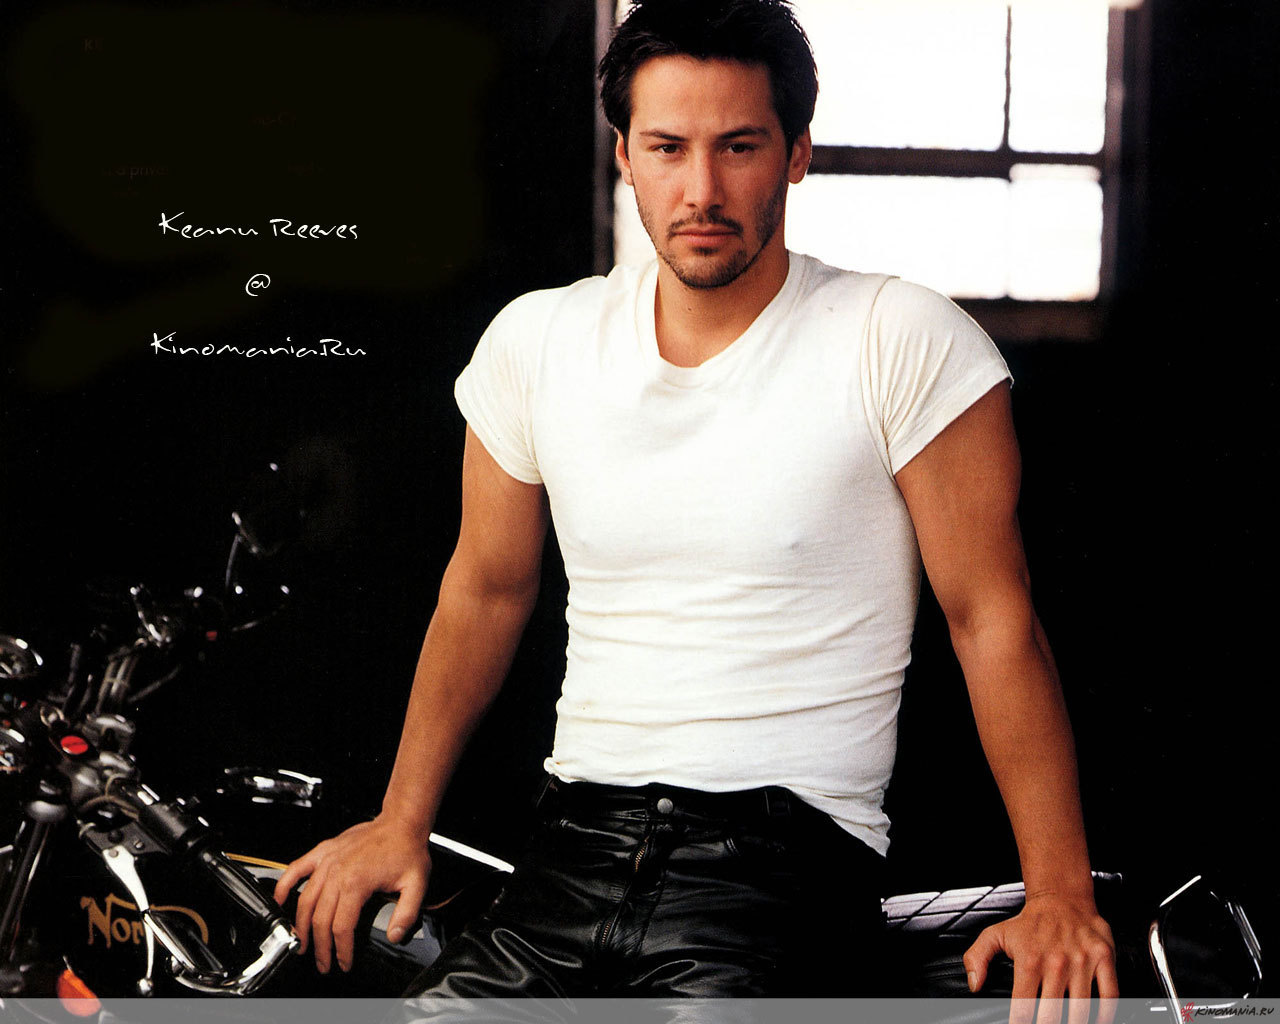 http://2.bp.blogspot.com/-EOw0UJeGry4/T_xchH8cN0I/AAAAAAAAMYg/Uc7EsMklrr0/s1600/Keanu-Reeves-keanu-reeves-24-1280-1024.jpg